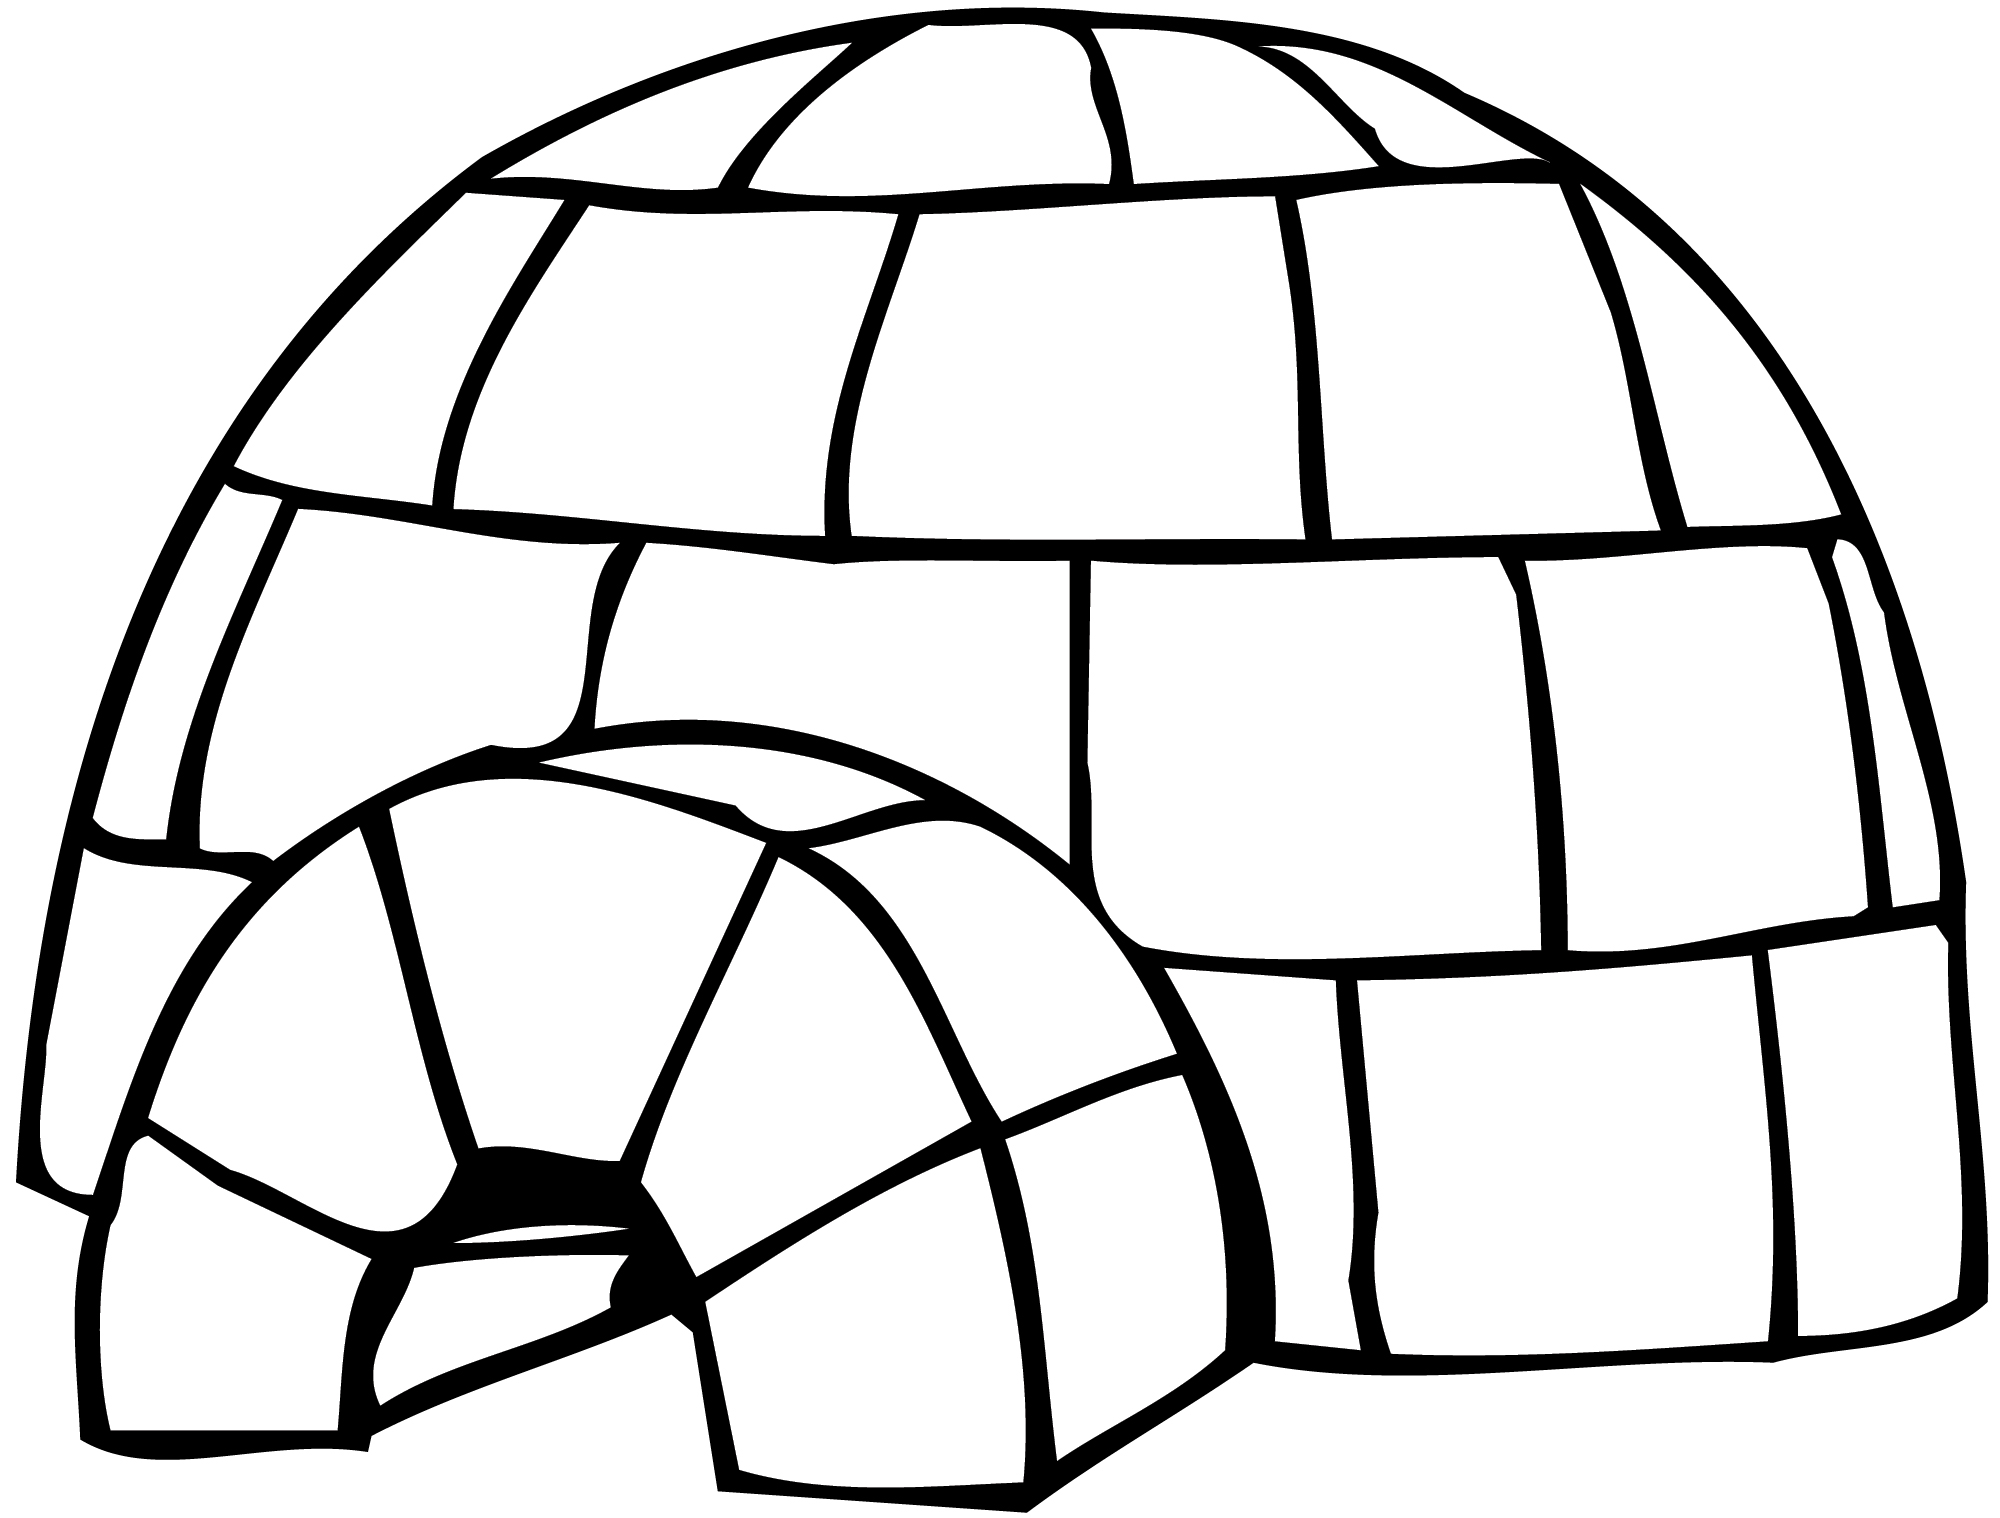 Clipart of an eskimo house picture transparent library Free Igloo Cliparts, Download Free Clip Art, Free Clip Art on ... picture transparent library